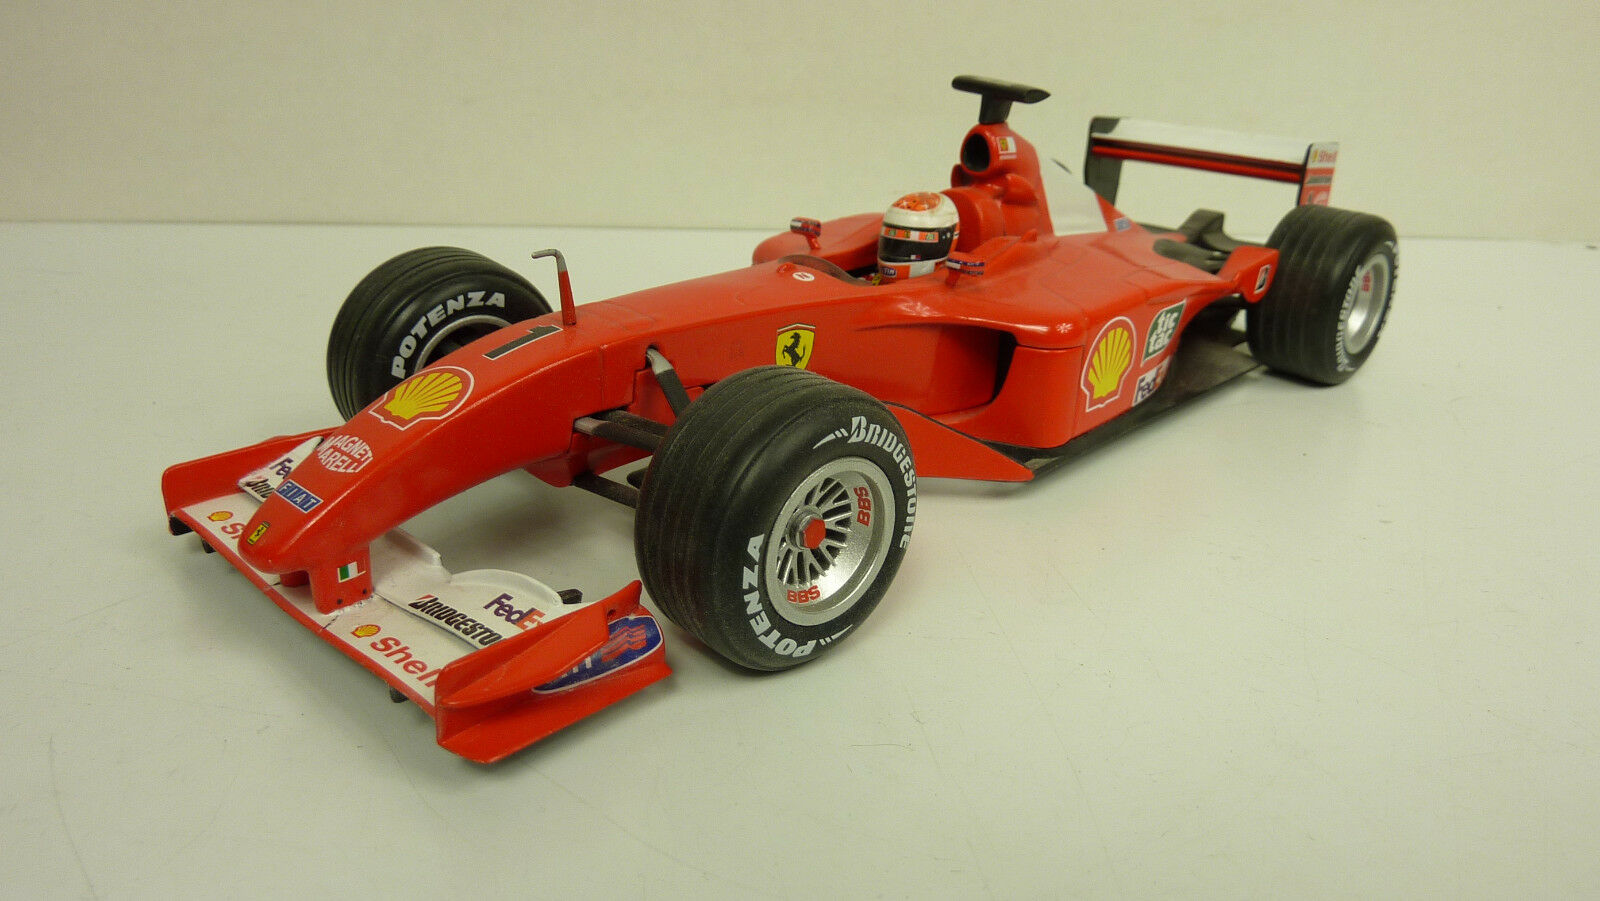 Mattel Hot Wheels 1 18 Michael SCHUMACHER FERRARI f2001 O. VP (a1736)